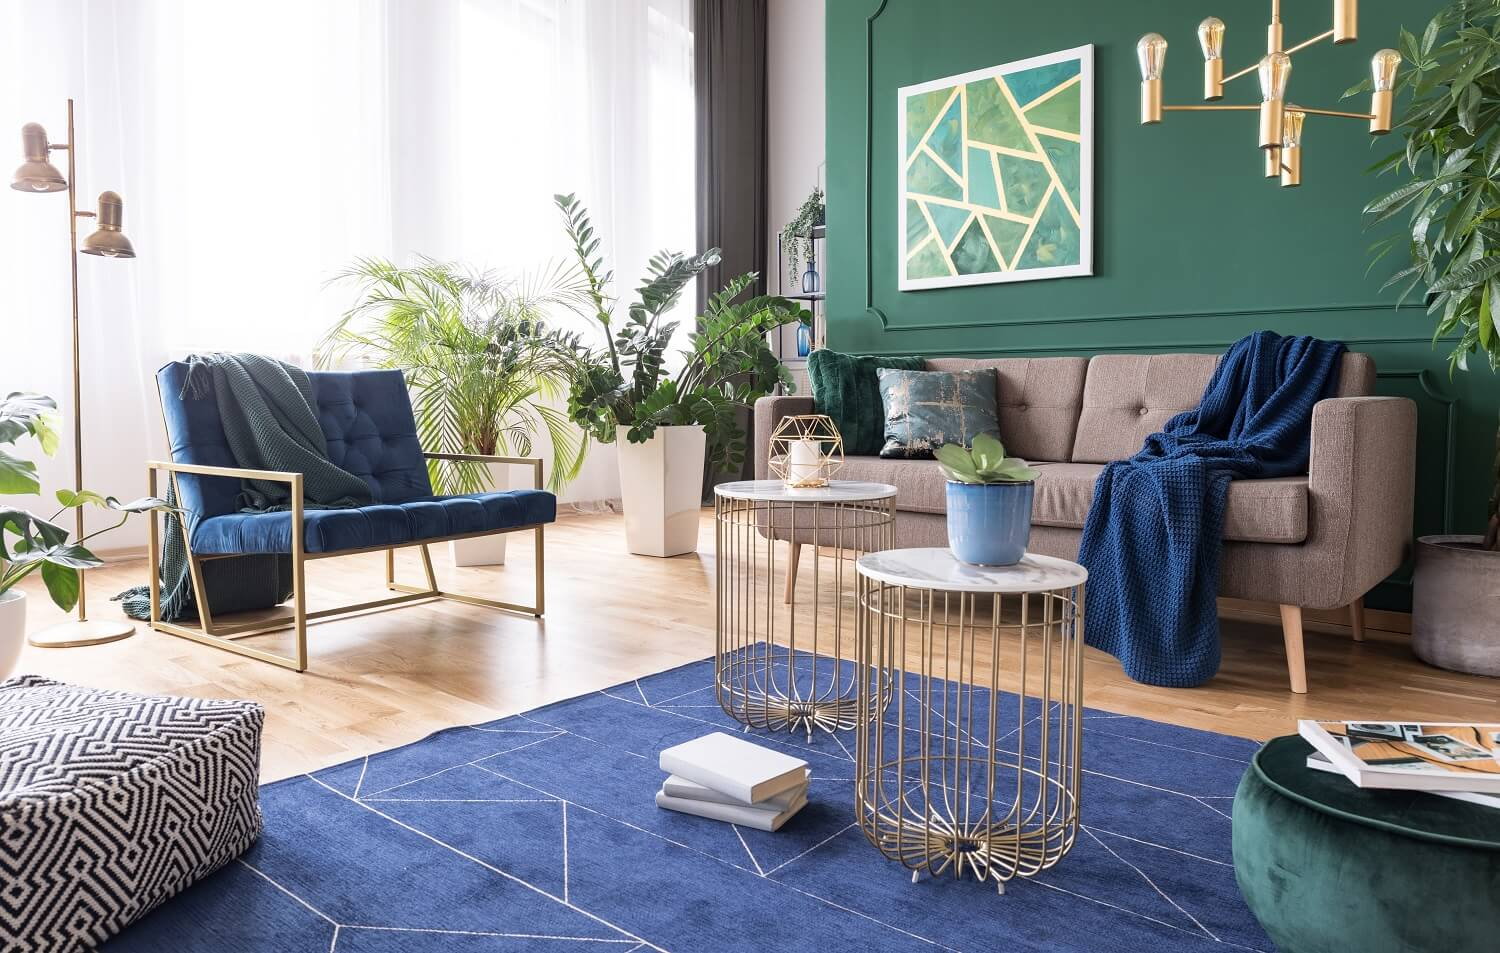 How to Use Natural Textures in Interior Design - Featured Image